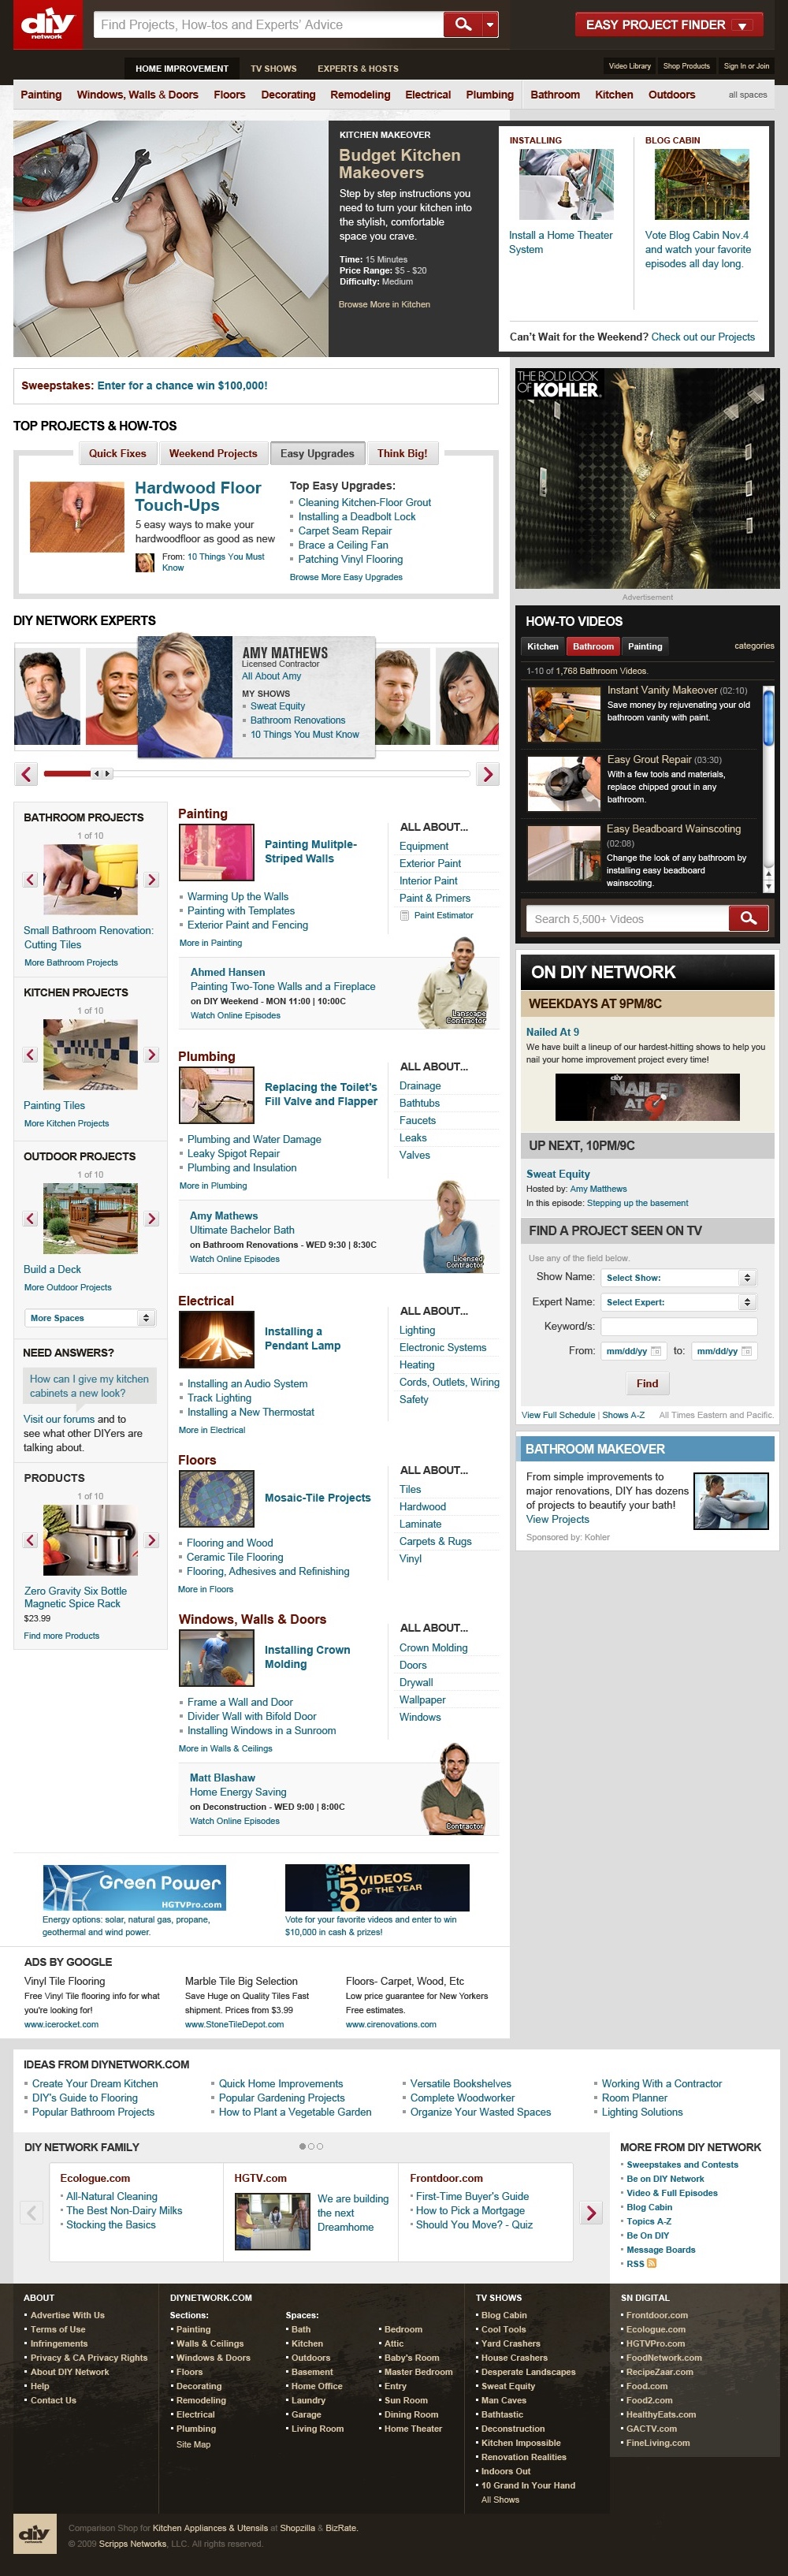 The homepage highlights both projects and experts. The experts are also ties to the TV network – a big driver of traffic to the website. Through research we found that users needs changed from weekday to weekend and content could be scheduled for the homepage to reflect this. The homepage shows a variety of design patterns created for use across not only this site but other Scripps properties.